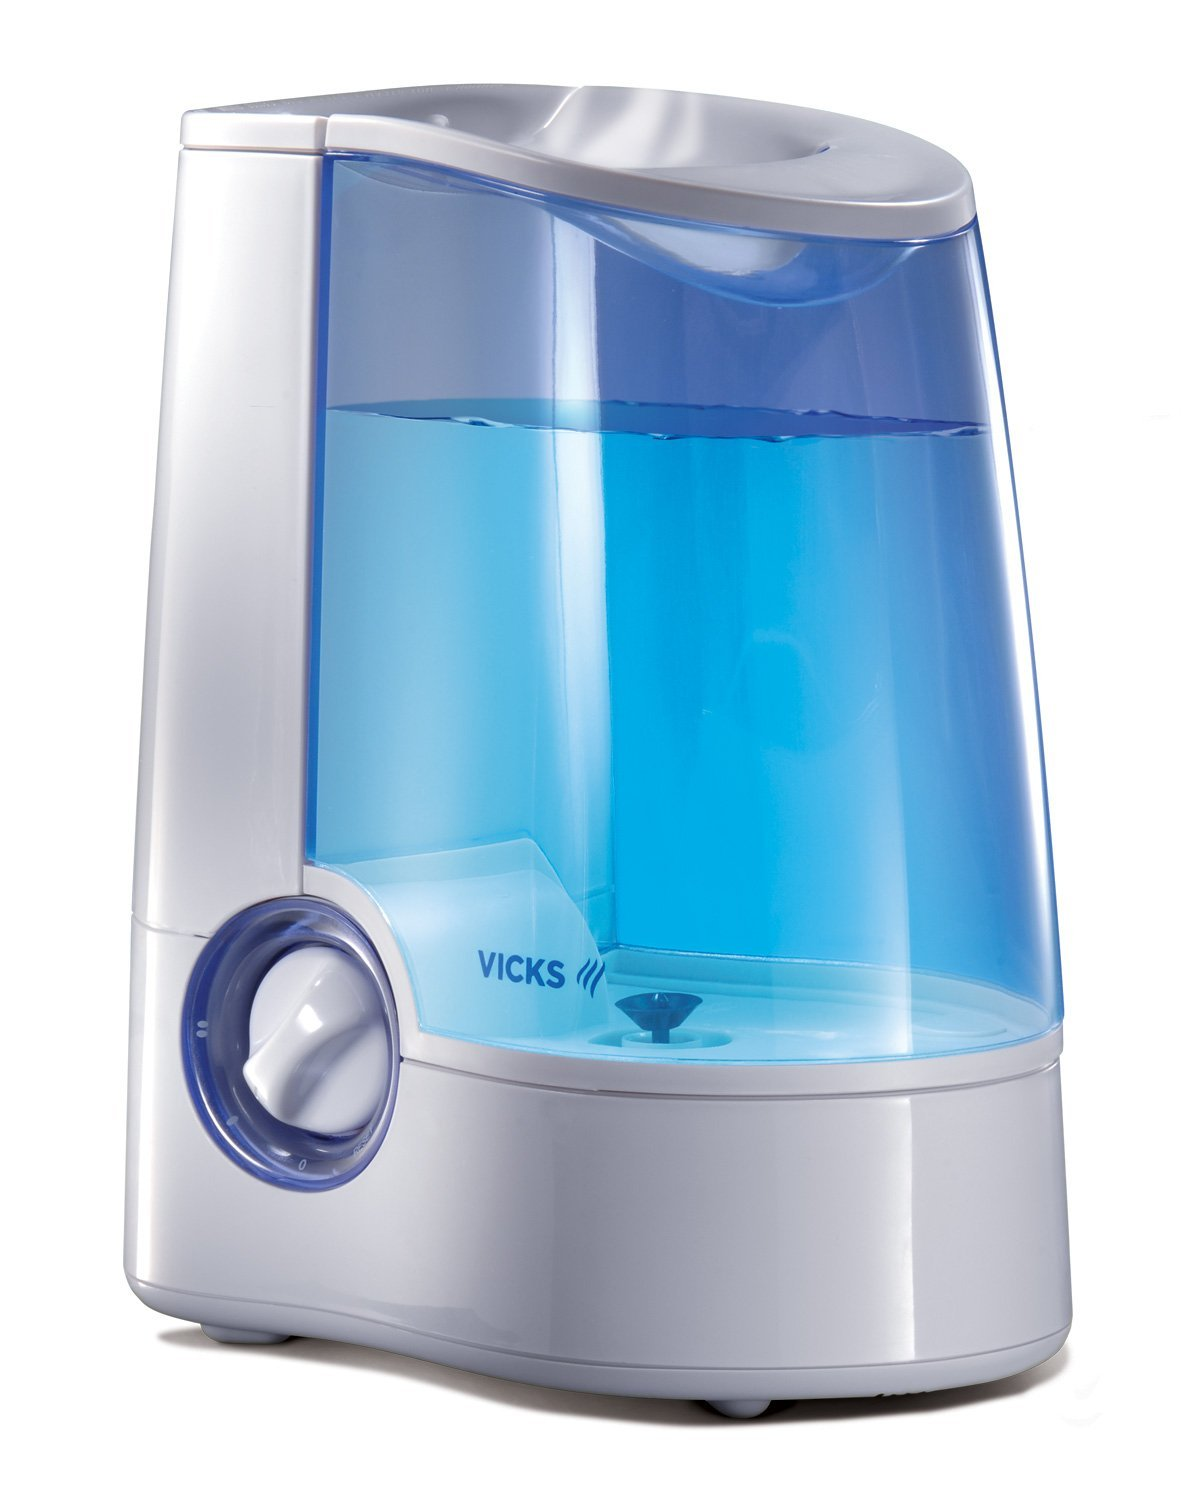 Vicks Warm Mist Humidifier 1600 · 1600 #158BB6